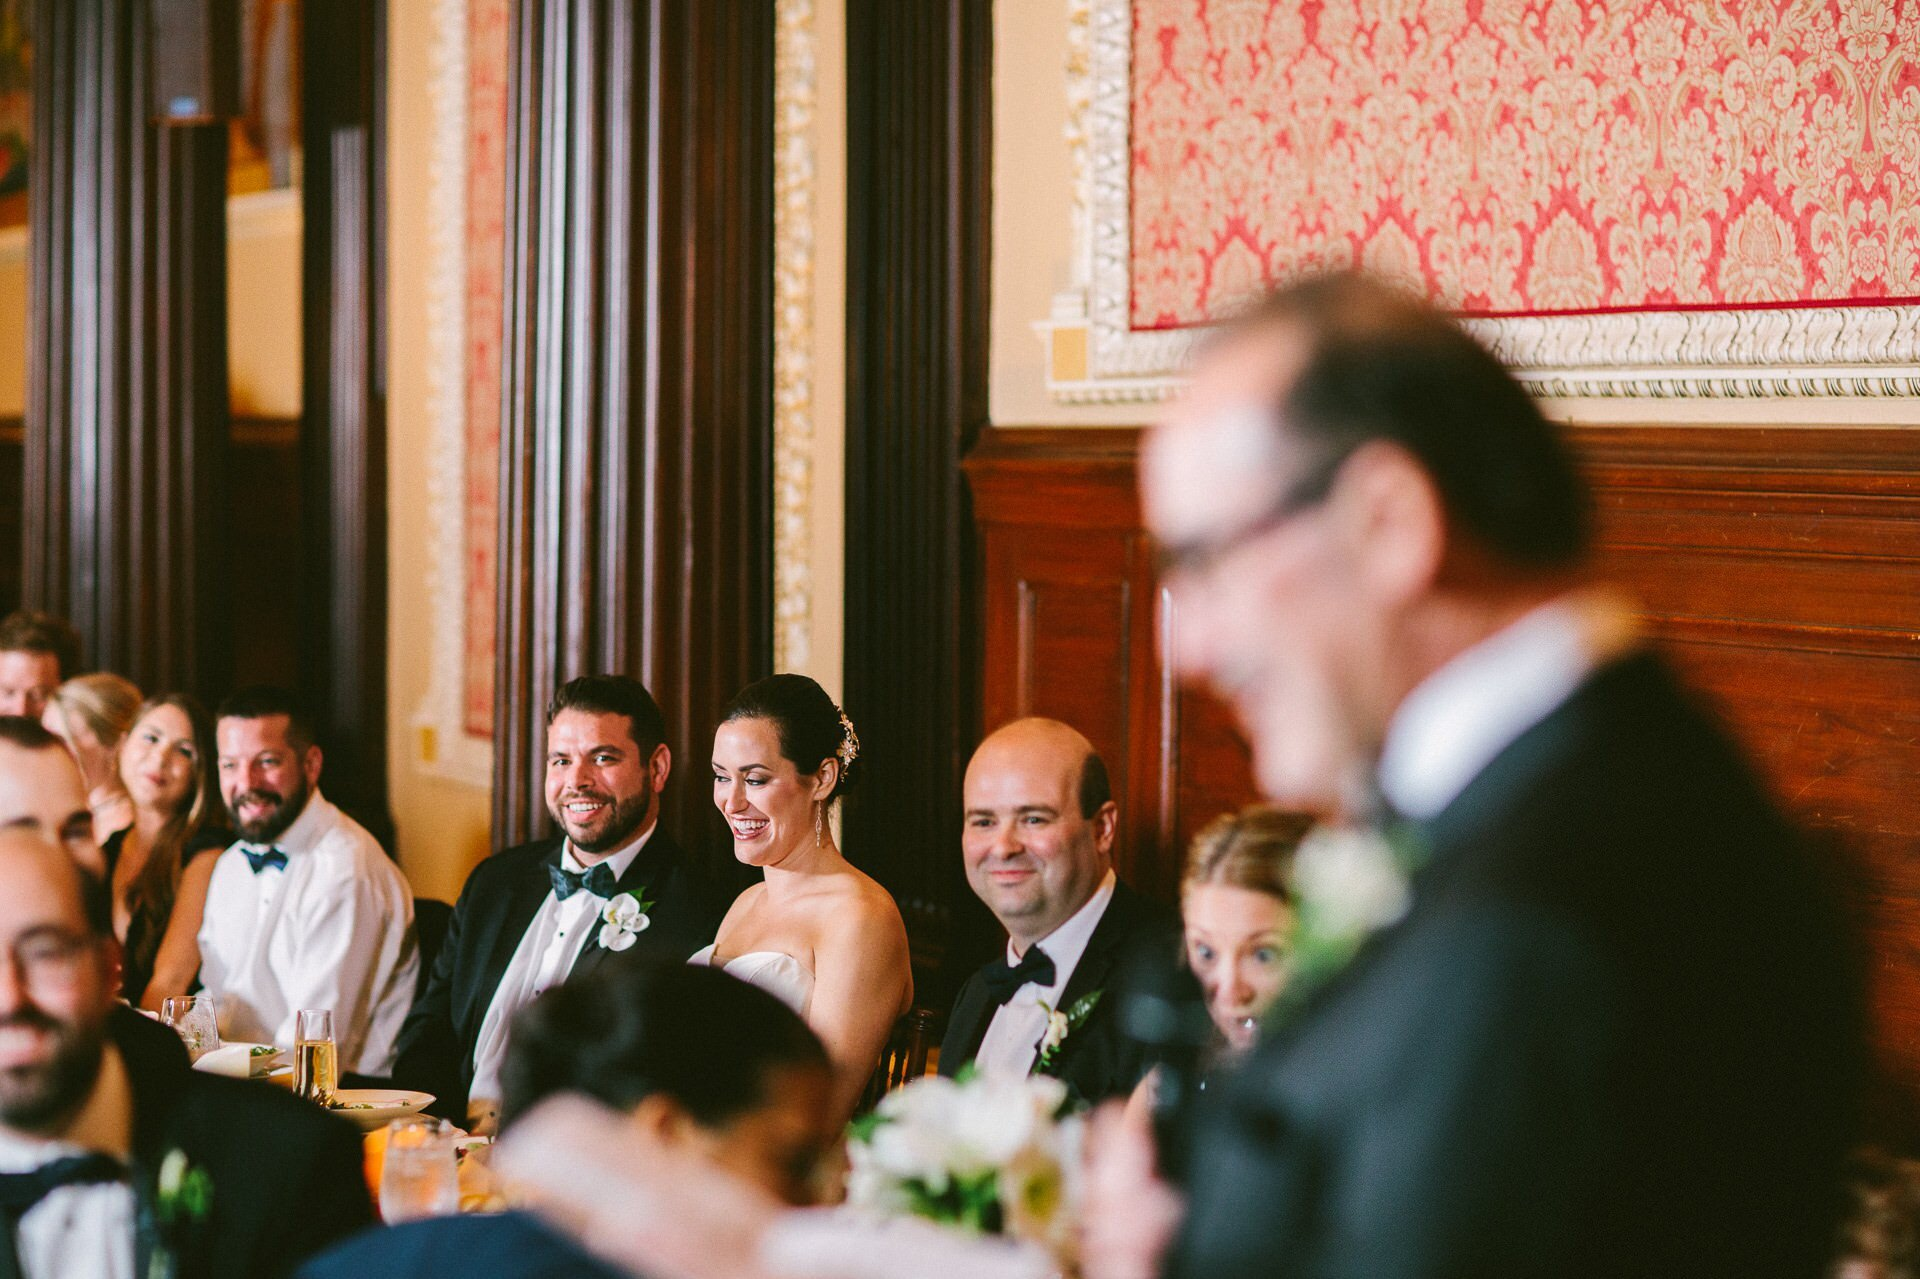 Playhouse State Theater Wedding Photographer in Cleveland 2 26.jpg